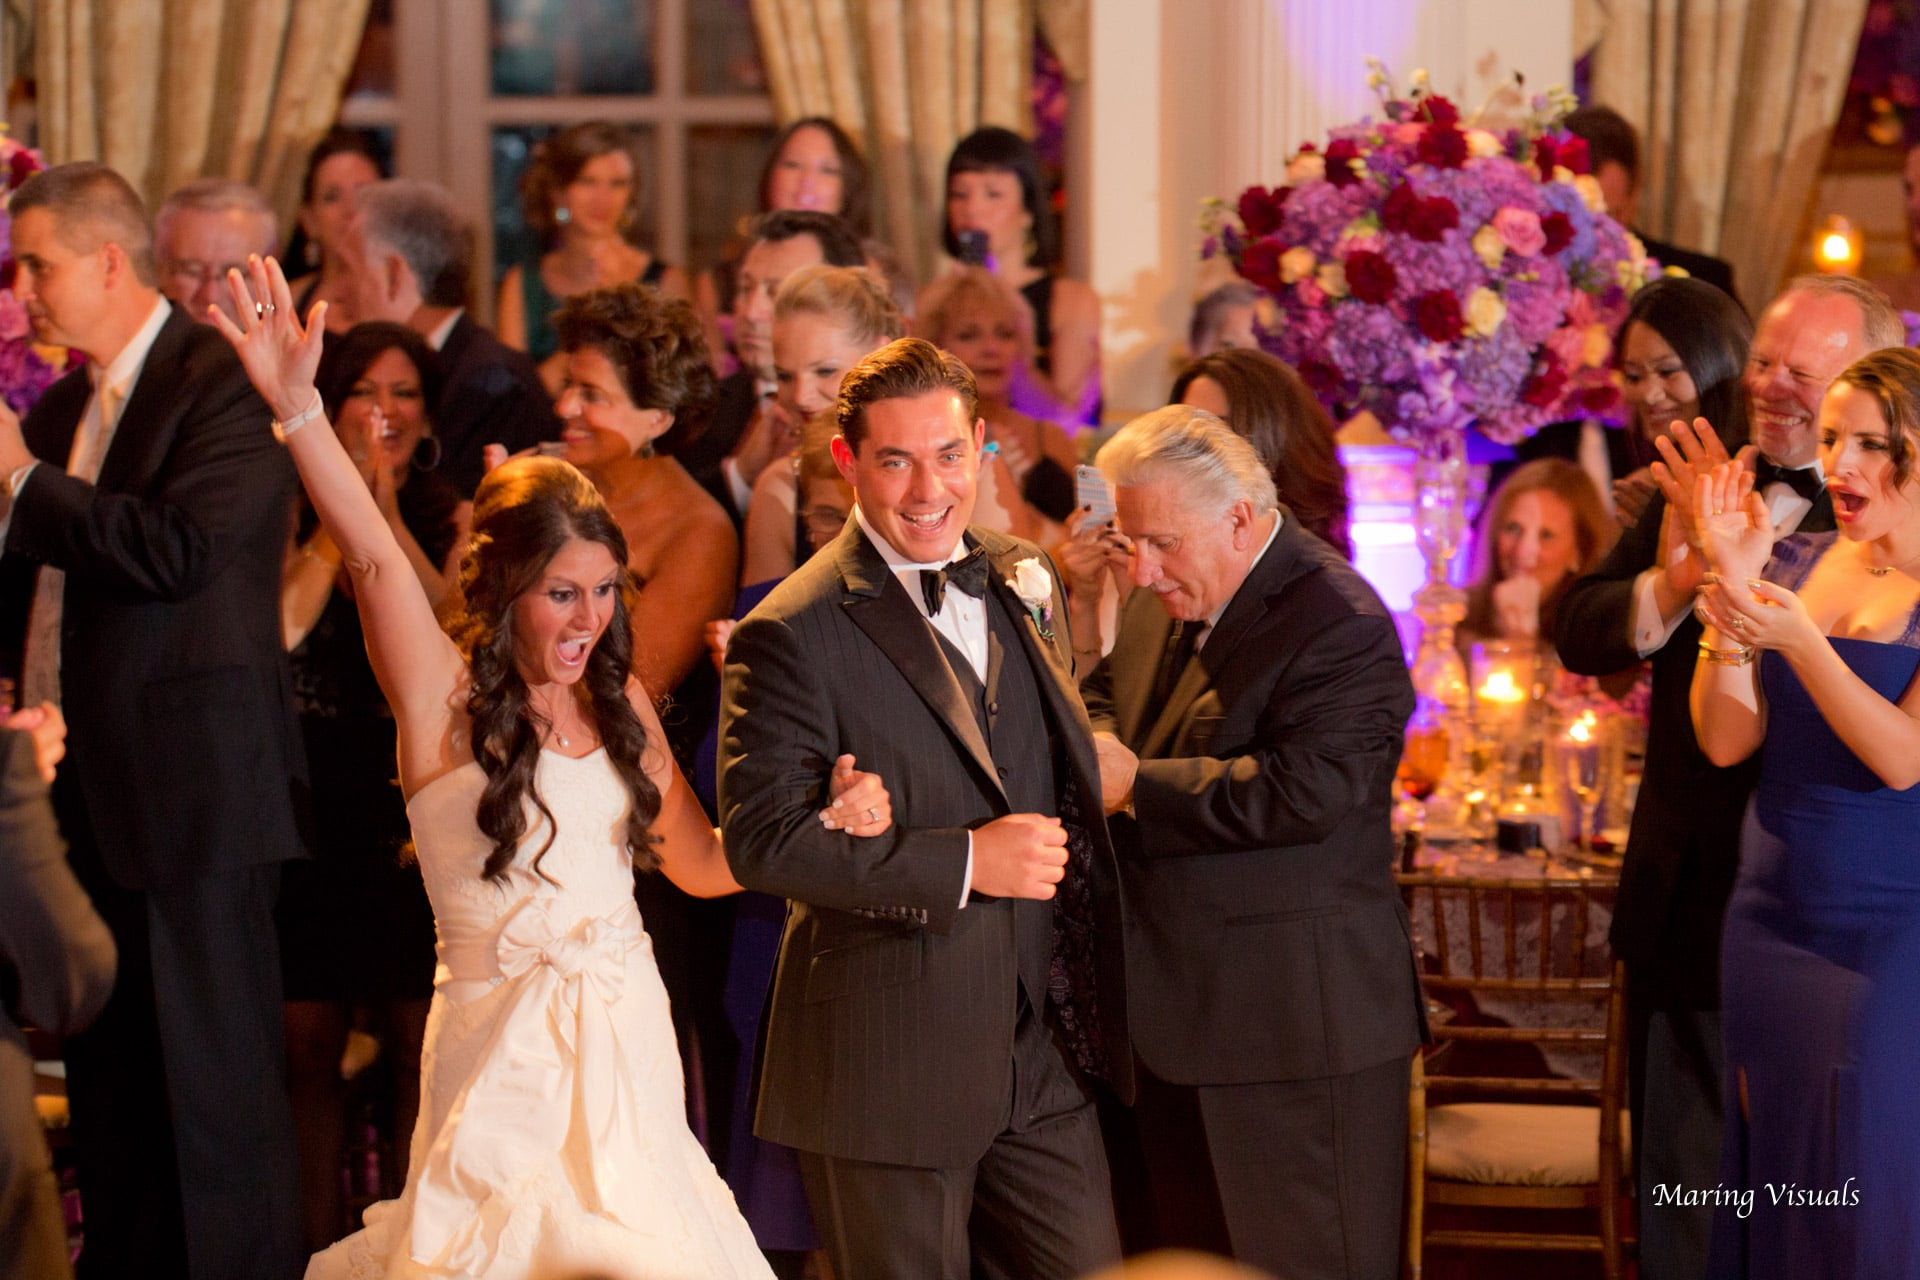 The Bride and Groom celebrate as they enter their reception at The Plaza Hotel NyC